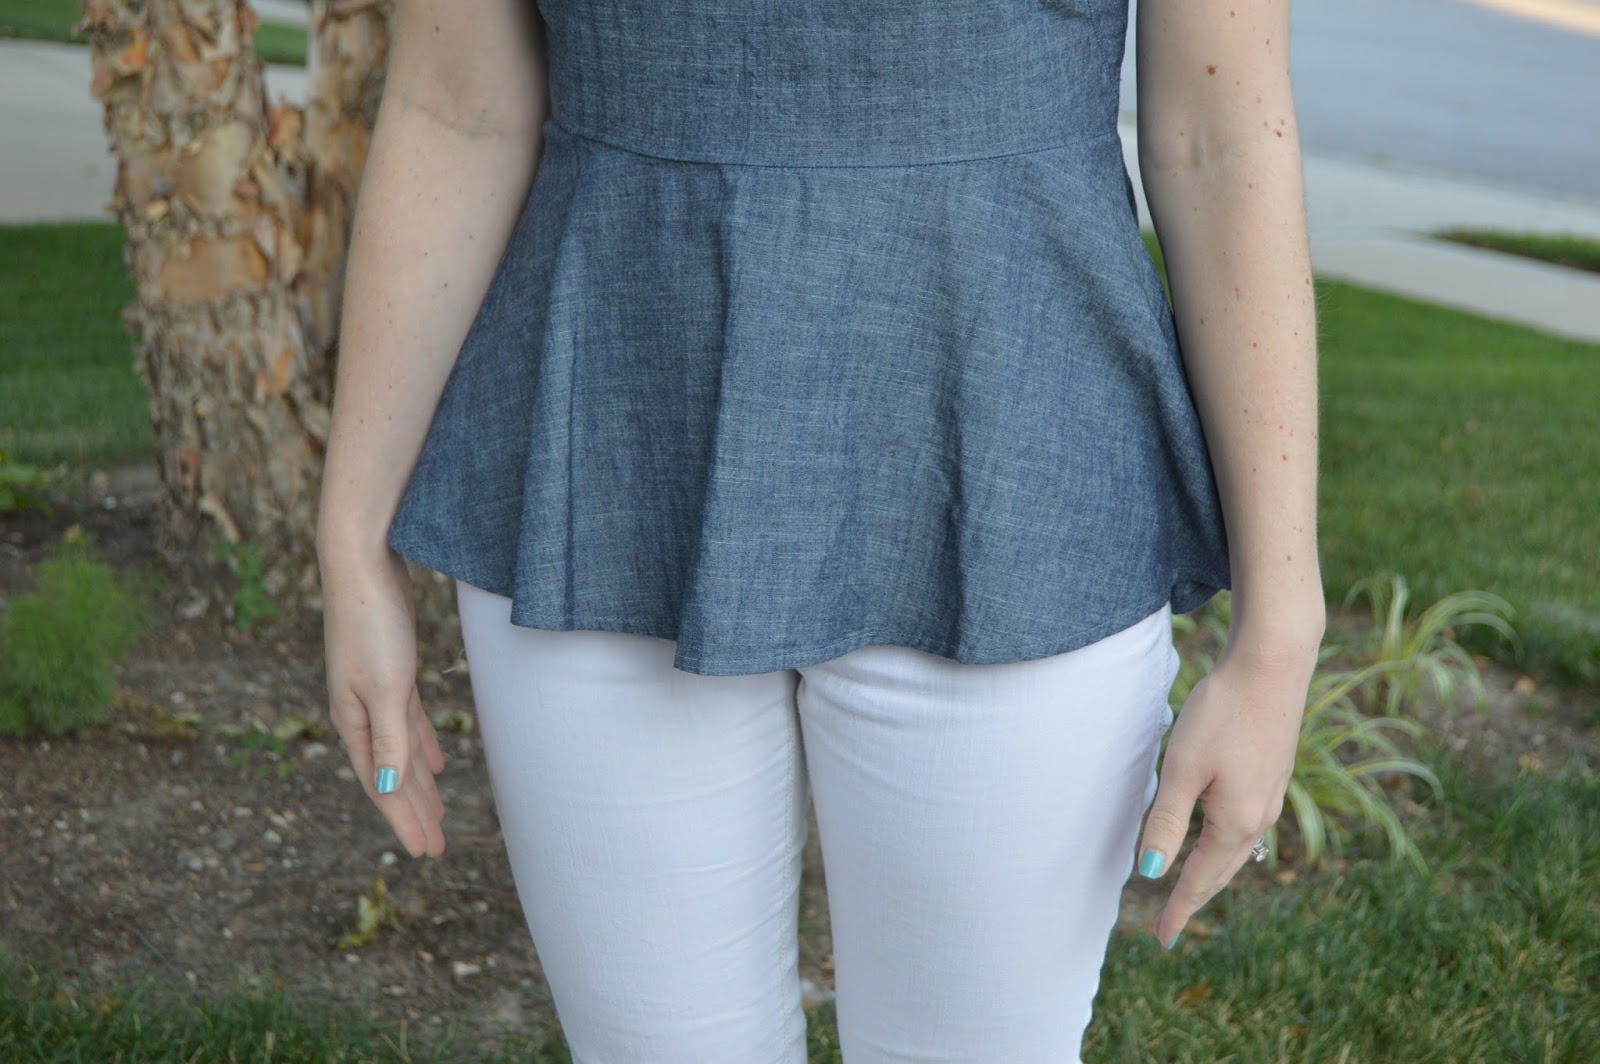 chambray peplum top | banana republic peplum top | chambray top outfit ideas | what to wear with a chambray top